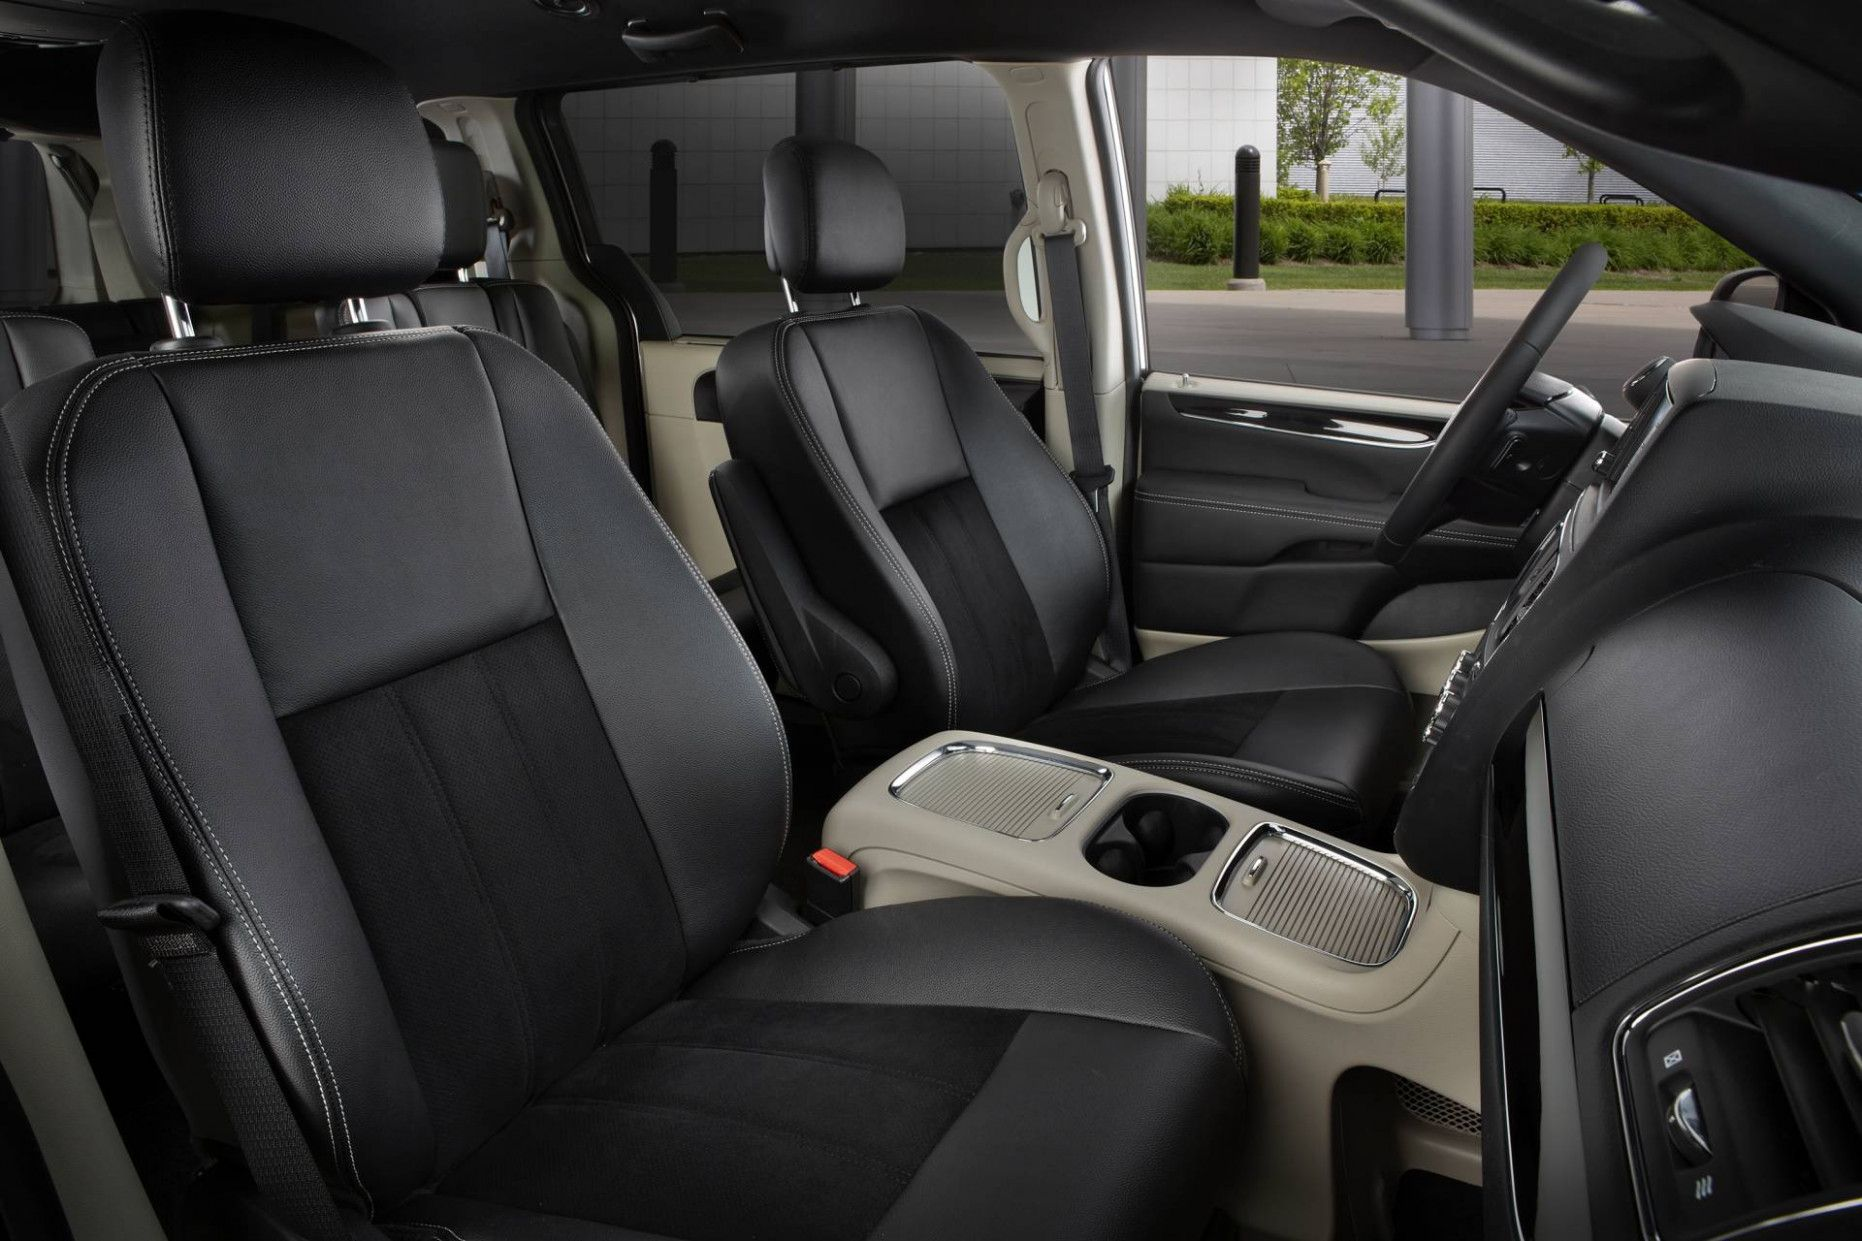 2020 Dodge Grand Caravan Review Spesification